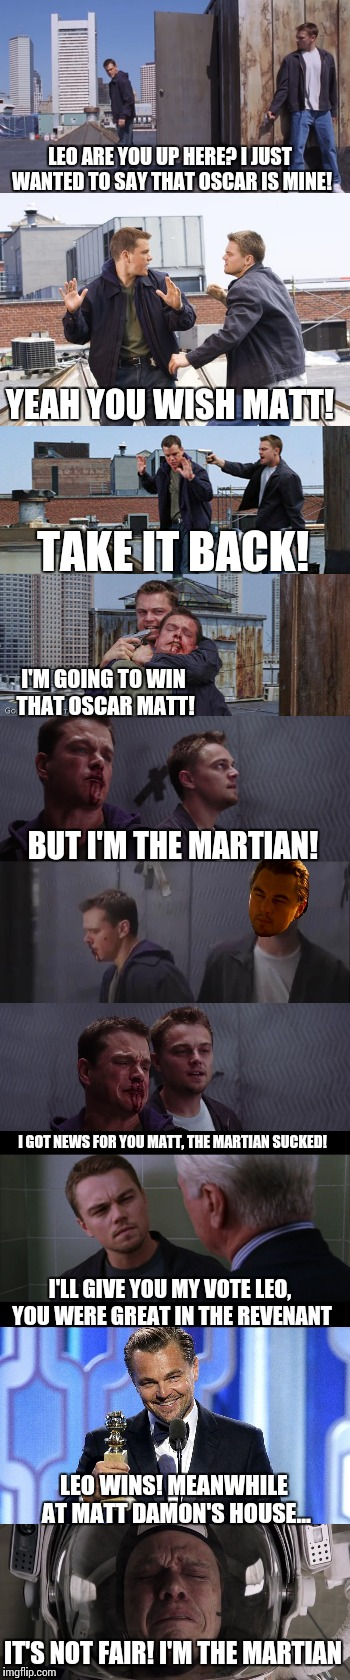 Leo vs The Martian |  LEO ARE YOU UP HERE? I JUST WANTED TO SAY THAT OSCAR IS MINE! YEAH YOU WISH MATT! TAKE IT BACK! I'M GOING TO WIN THAT OSCAR MATT! BUT I'M THE MARTIAN! I GOT NEWS FOR YOU MATT, THE MARTIAN SUCKED! I'LL GIVE YOU MY VOTE LEO, YOU WERE GREAT IN THE REVENANT; LEO WINS! MEANWHILE AT MATT DAMON'S HOUSE... IT'S NOT FAIR! I'M THE MARTIAN | image tagged in memes,leonardo dicaprio,matt damon,the revenant,the martian | made w/ Imgflip meme maker